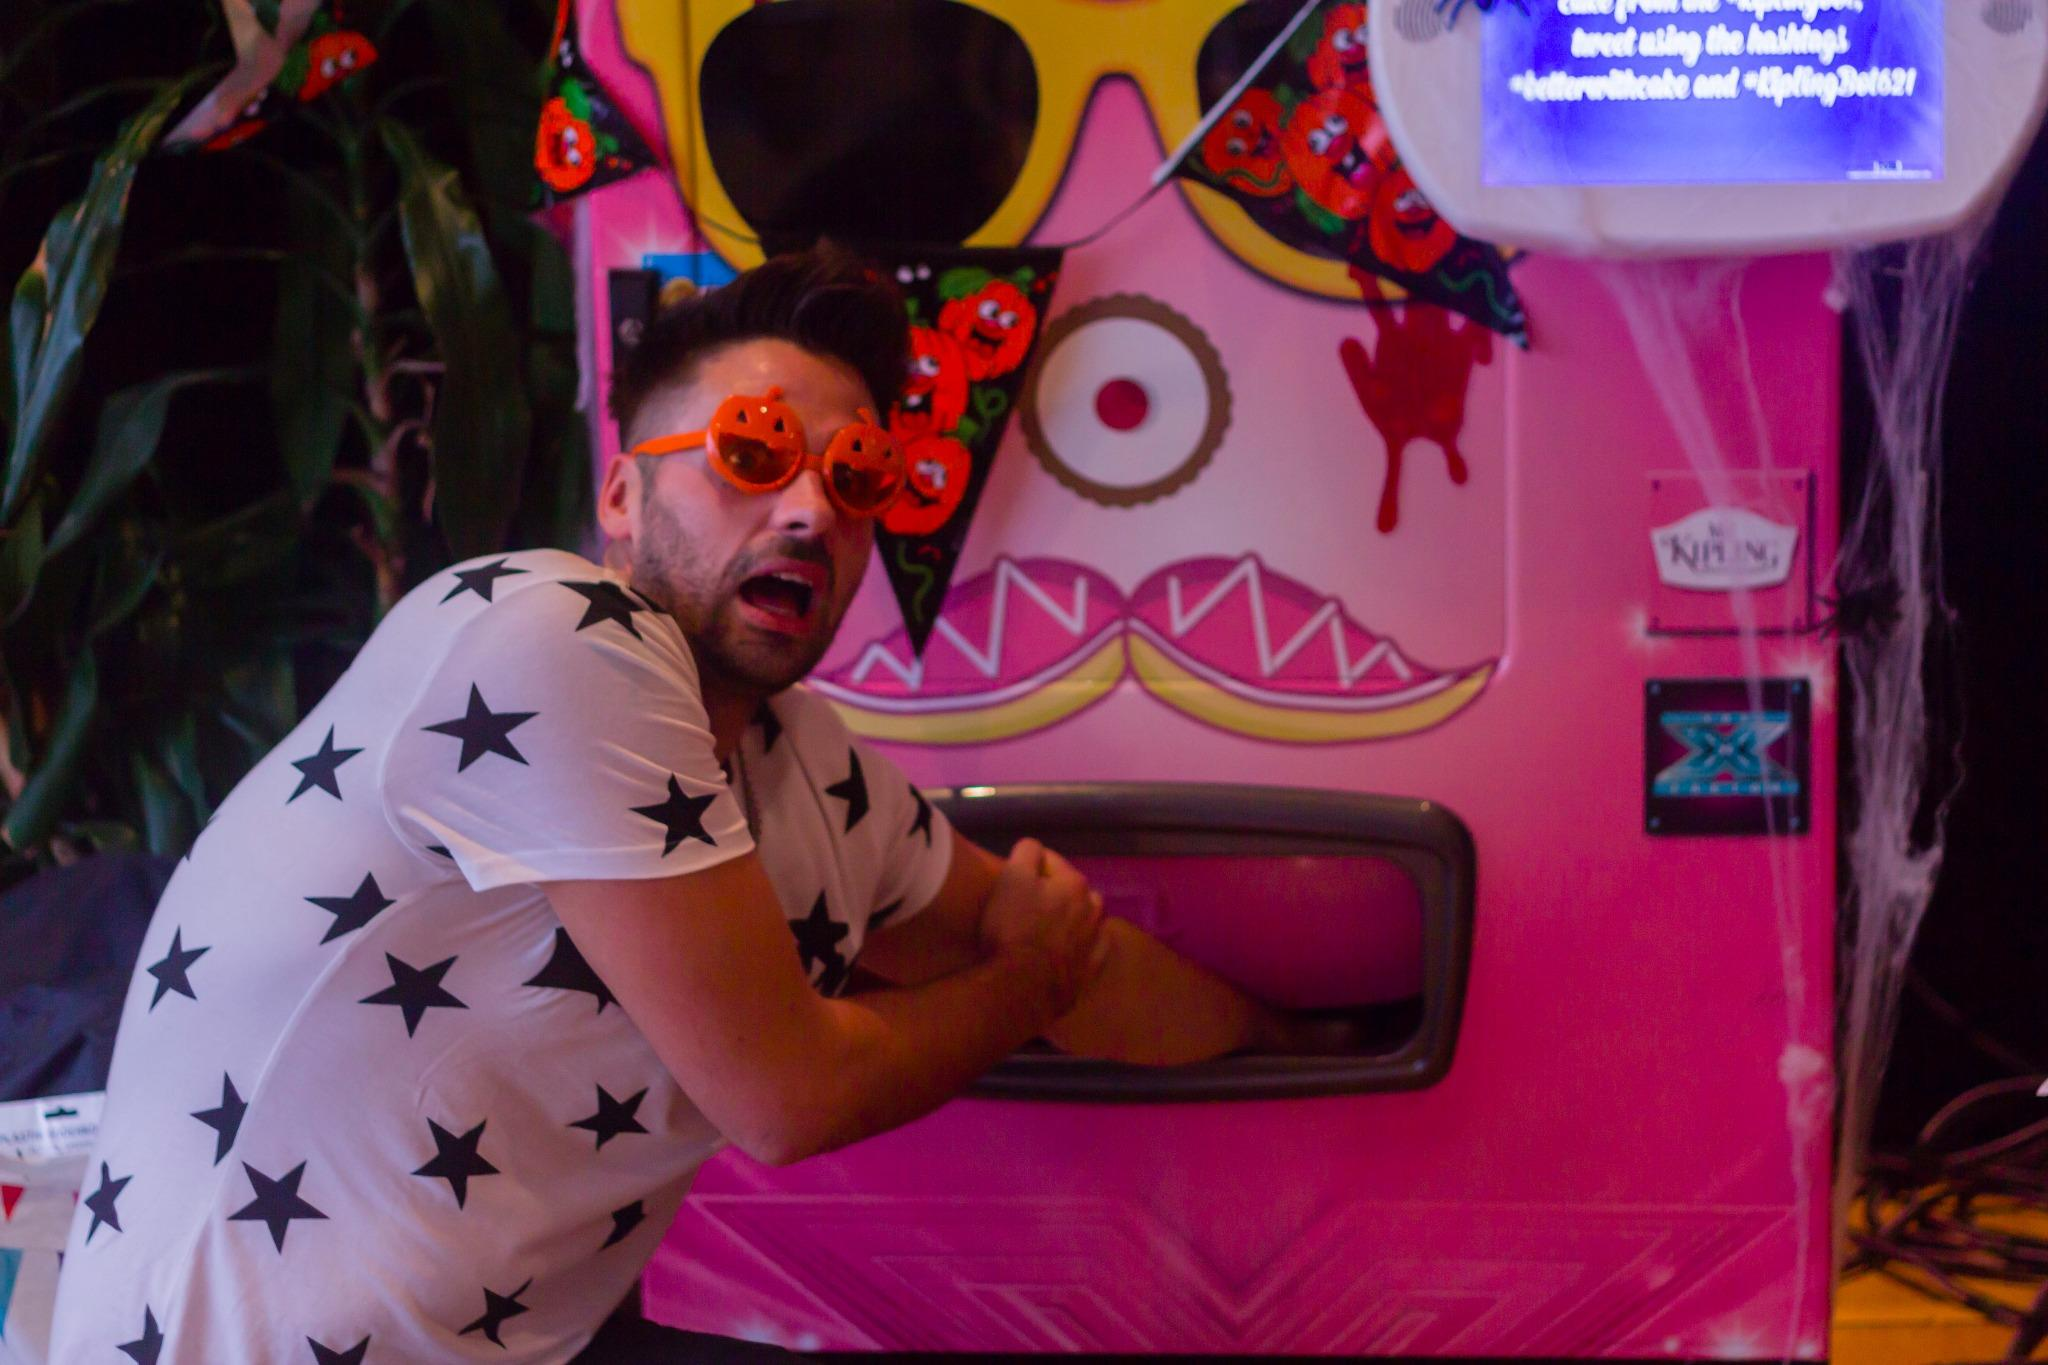 Trick or treat is #betterwithcake! What should @Bhaenow get from #kiplingbot? RT = trick, fave = treat #ad http://t.co/6BDJ2PZQwX